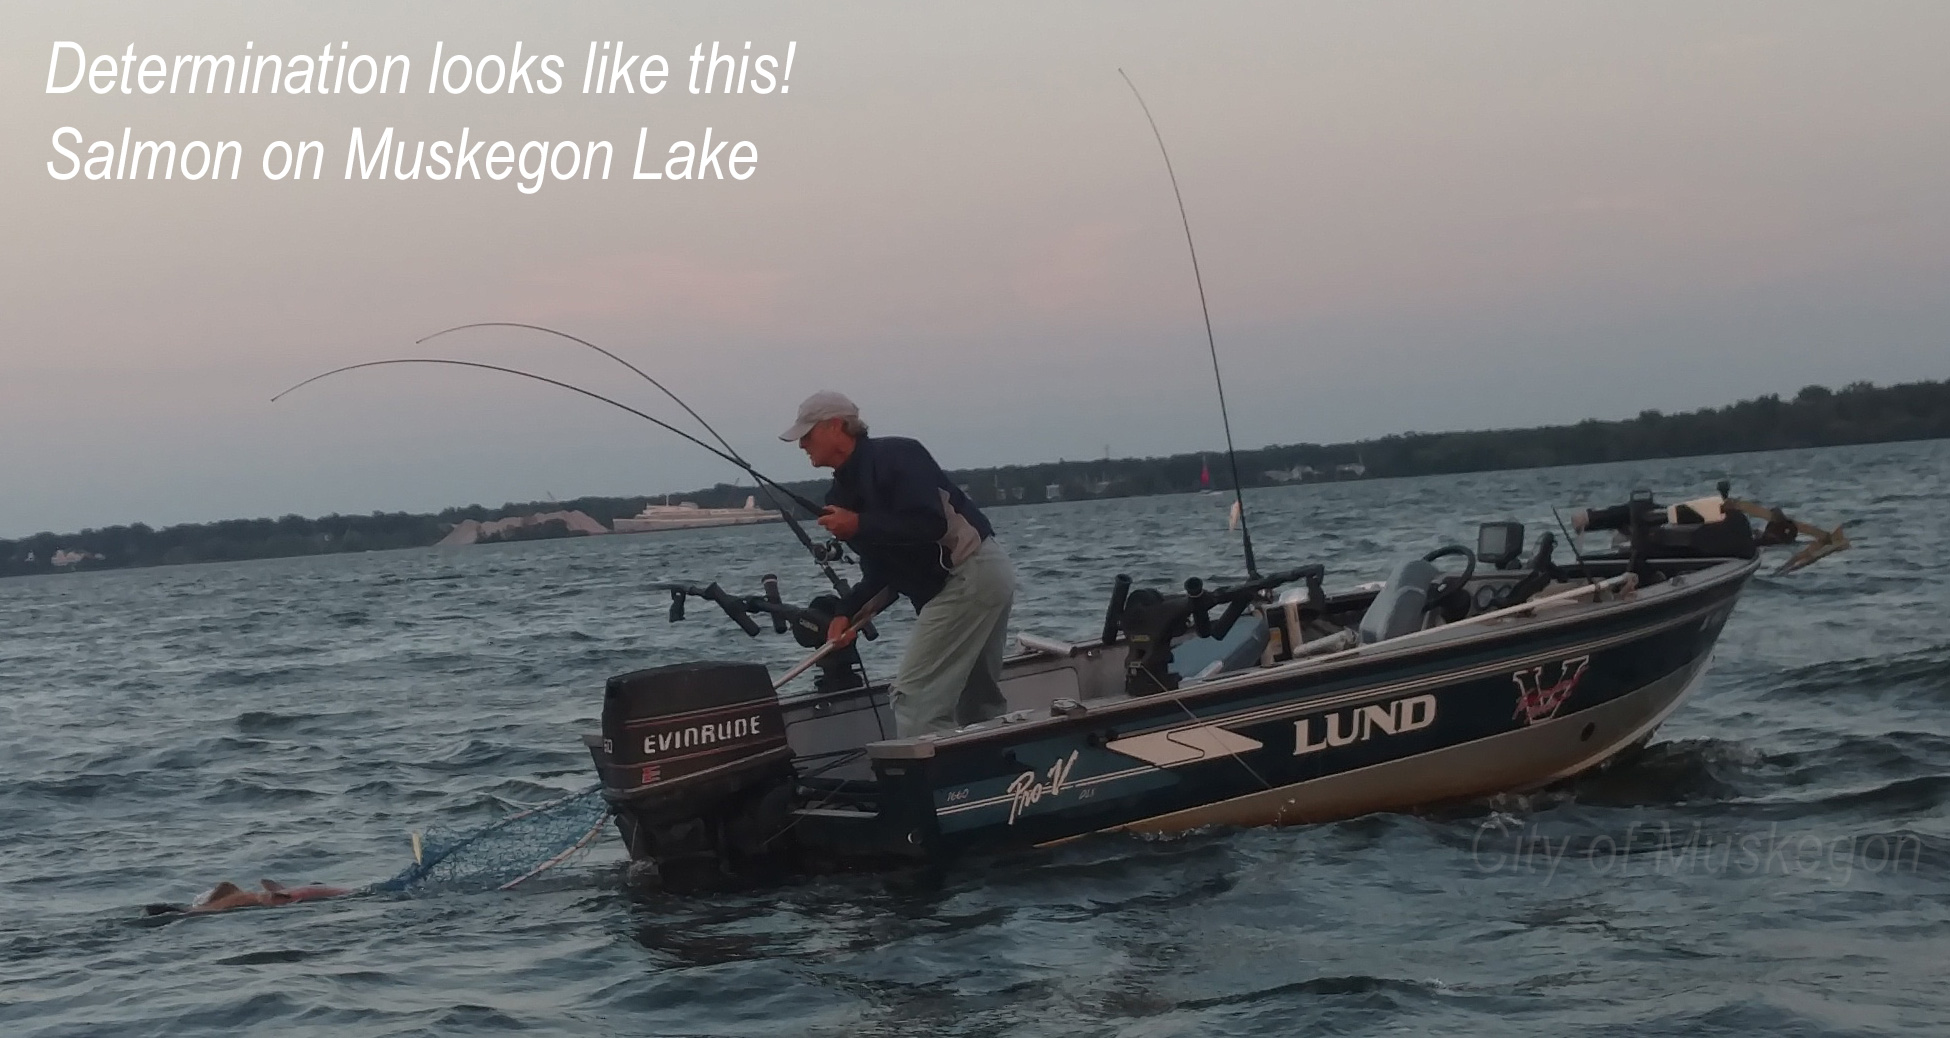 Salmon caught in Muskegon Lake